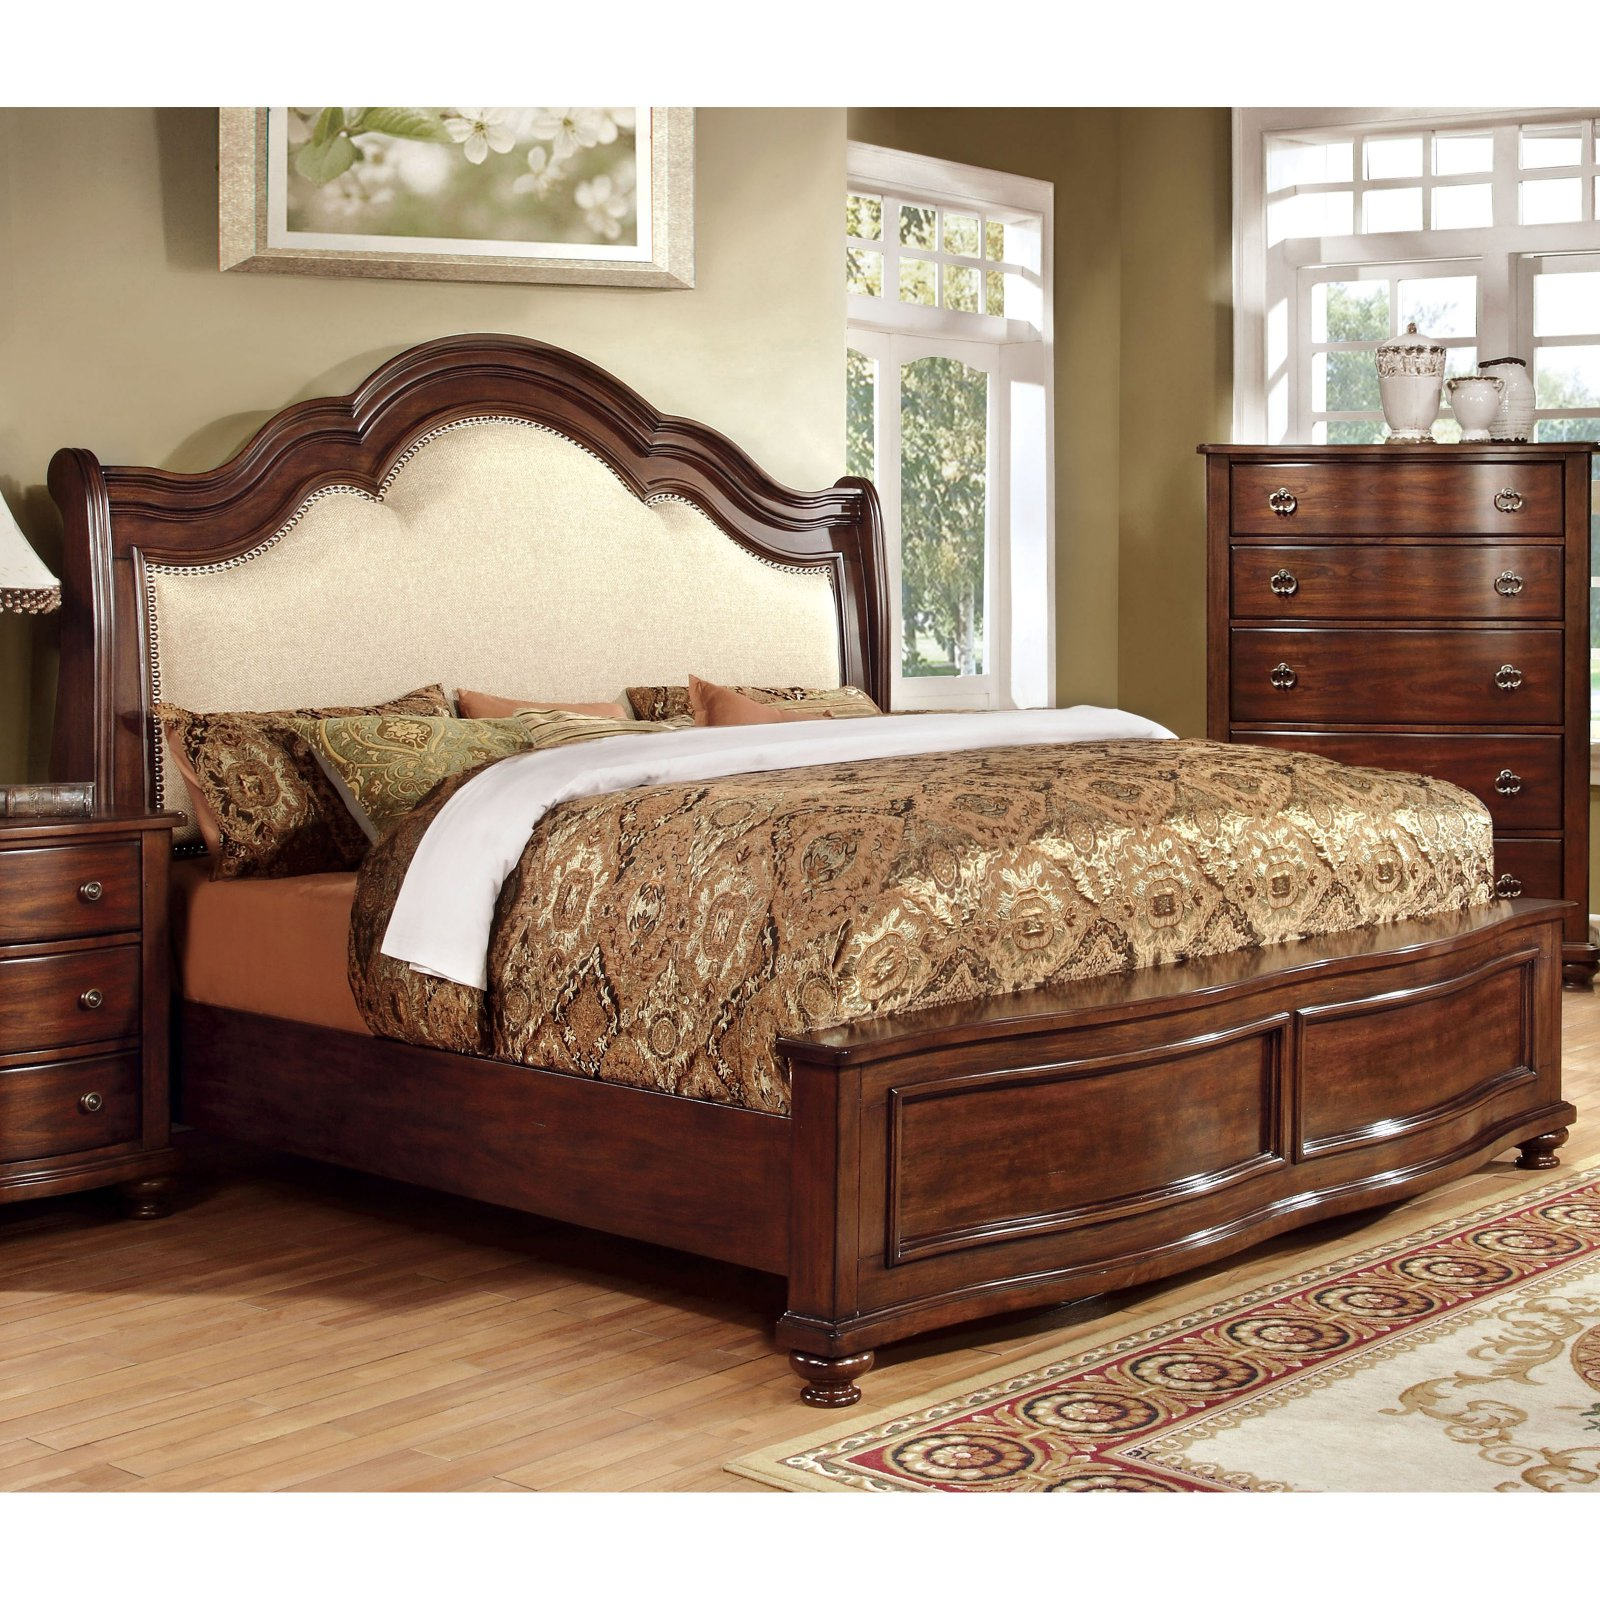 Furniture of America Meveena Sleigh Bed with Low Footboard